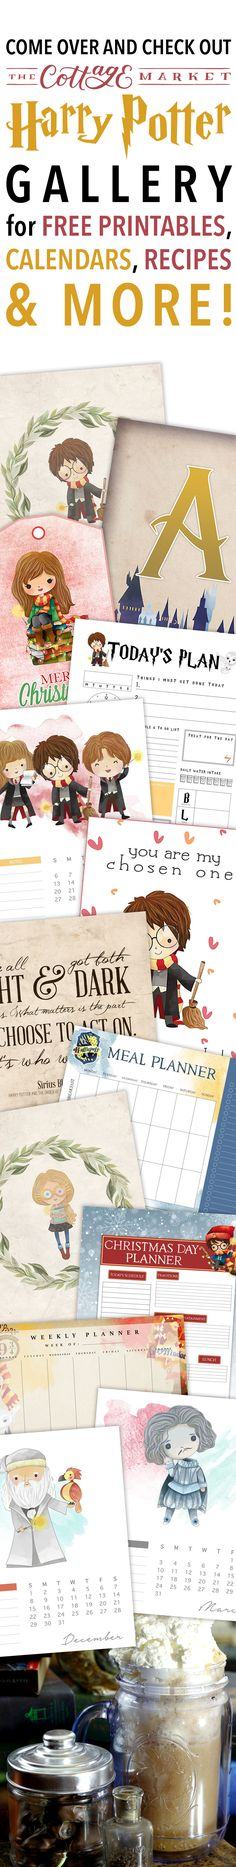 Harry Potter Movies Fantastic Beasts lot Harry Potter And The Cursed Child Movie Cast; Harry Potter Cast Filch this Harry Potter Go Harry Potter Printables, Harry Potter Food, Harry Potter Movies, Planners, Big Party, Mischief Managed, Party Packs, Monthly Planner, Recipe Cards